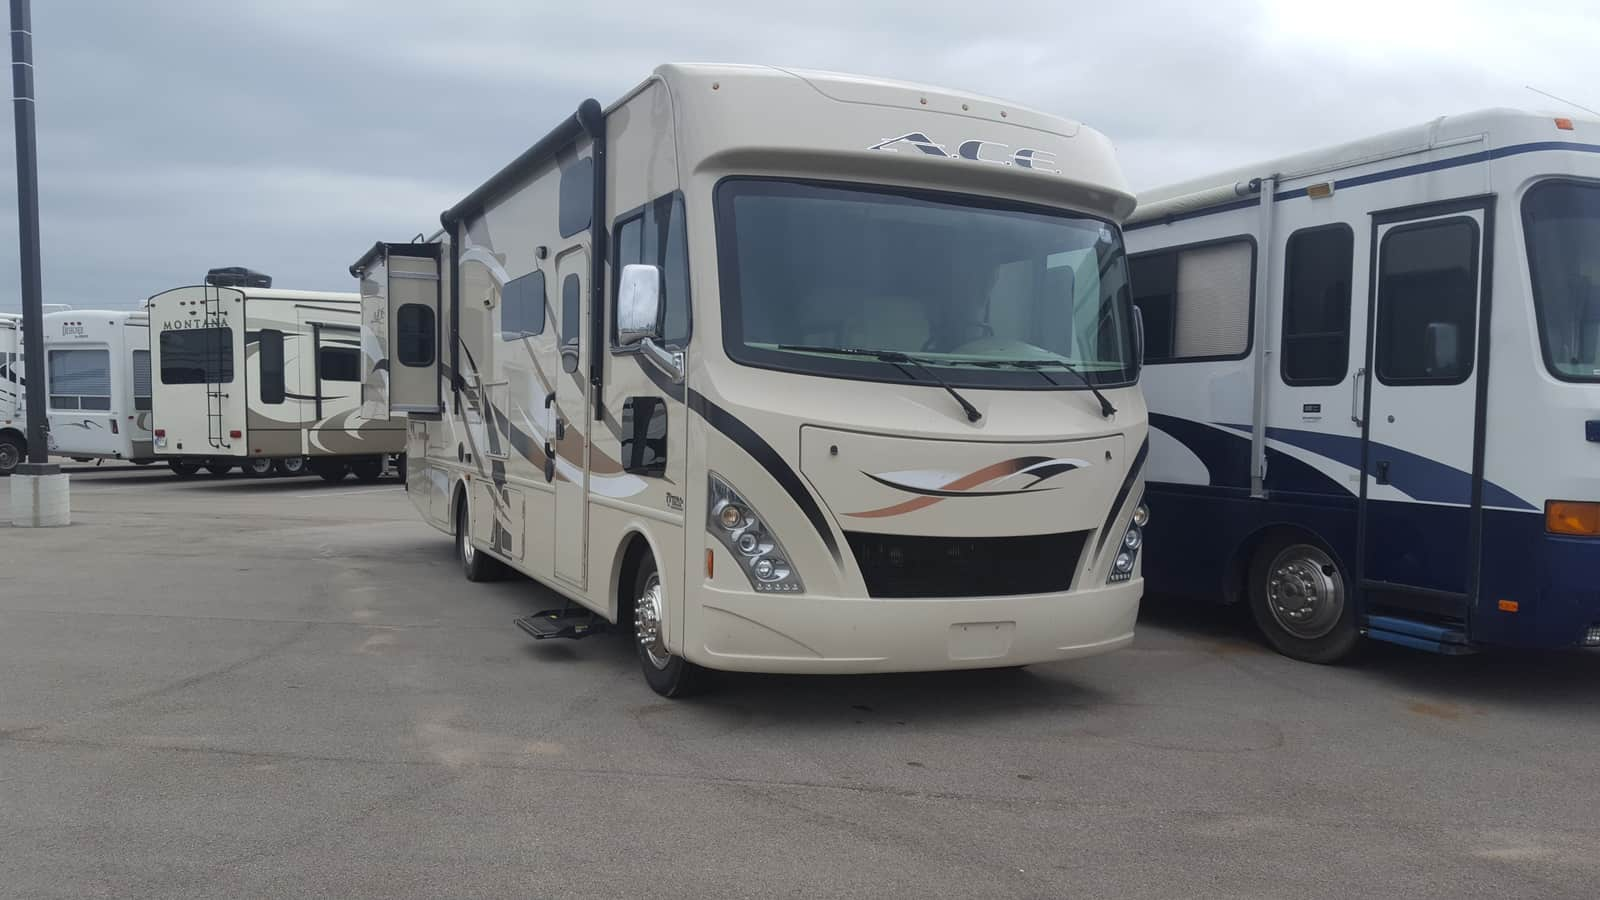 USED 2017 Thor Motor Coach ACE 30.3 - American RV